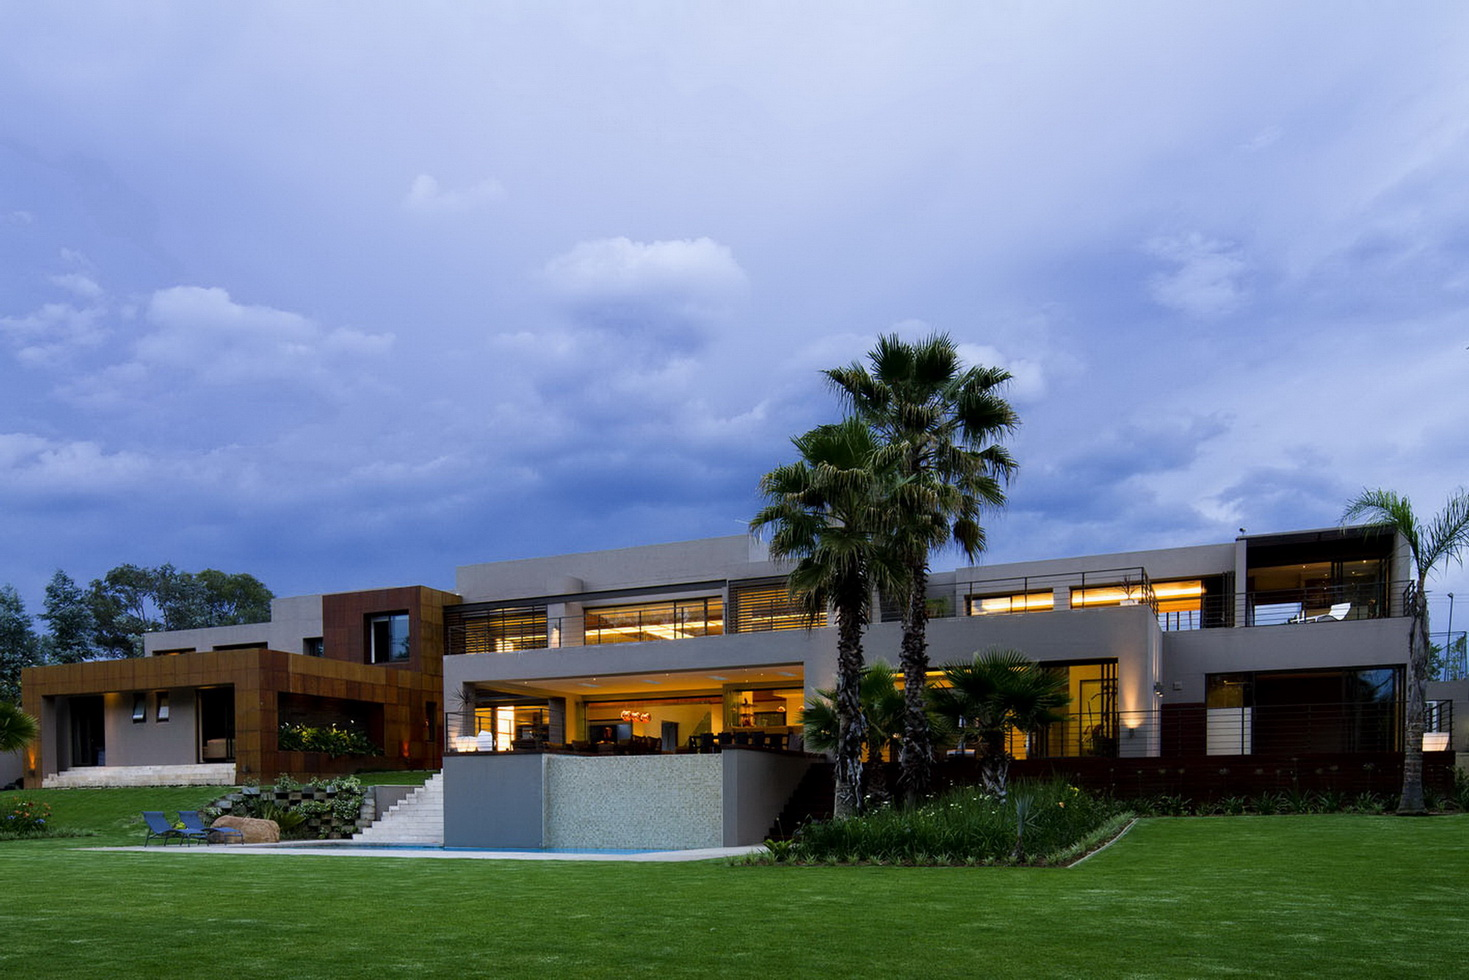 House Sed by Nico van der Meulen Architects